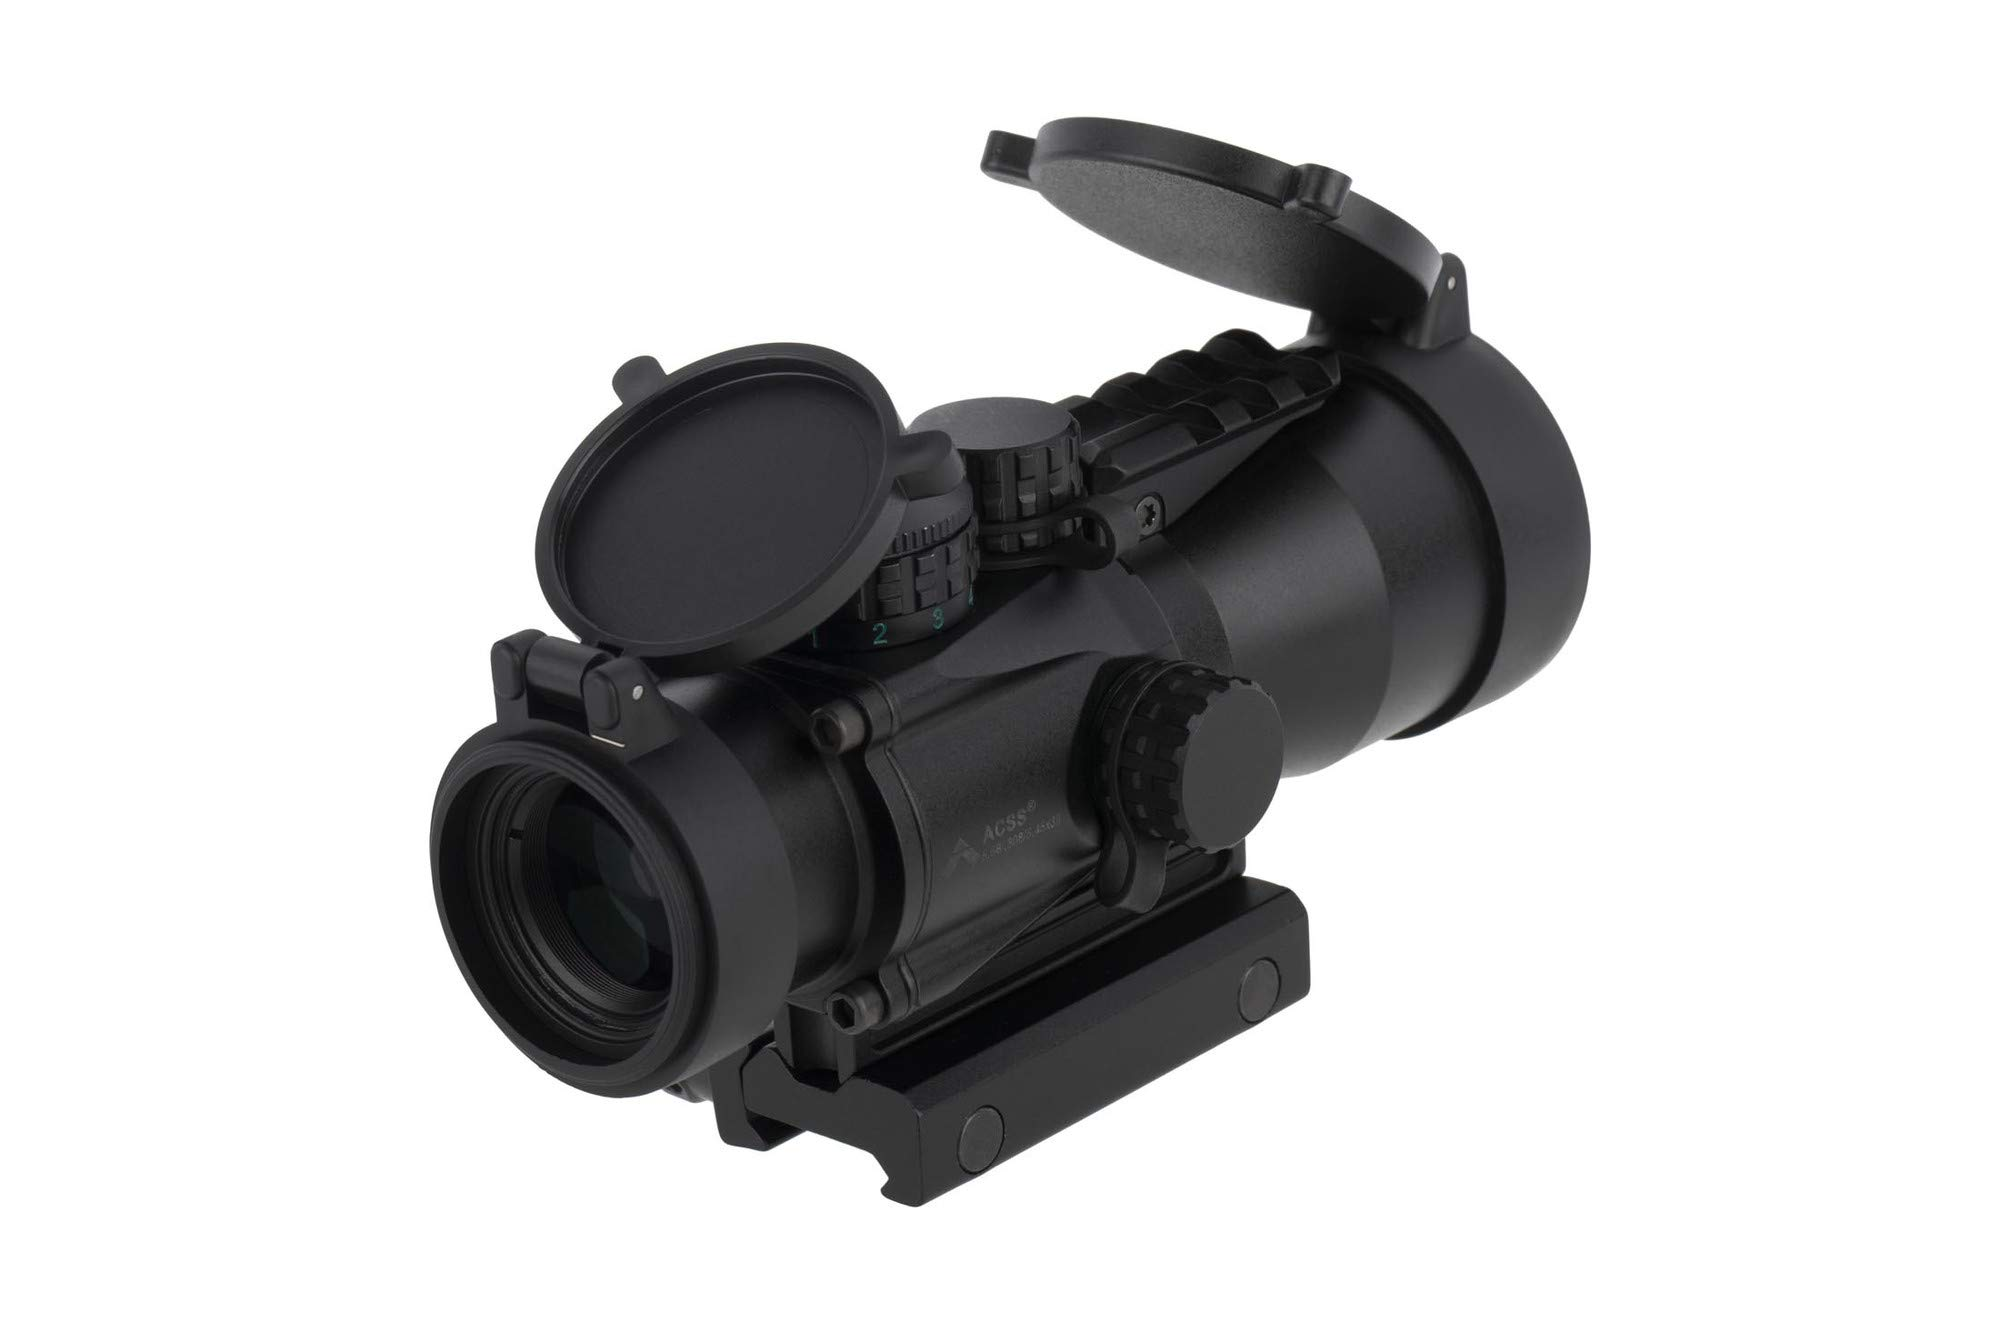 Primary Arms SLxP5 Compact 5x36 Gen II Prism Scope - ACSS-5.56/5.45/.308 by Primary Arms